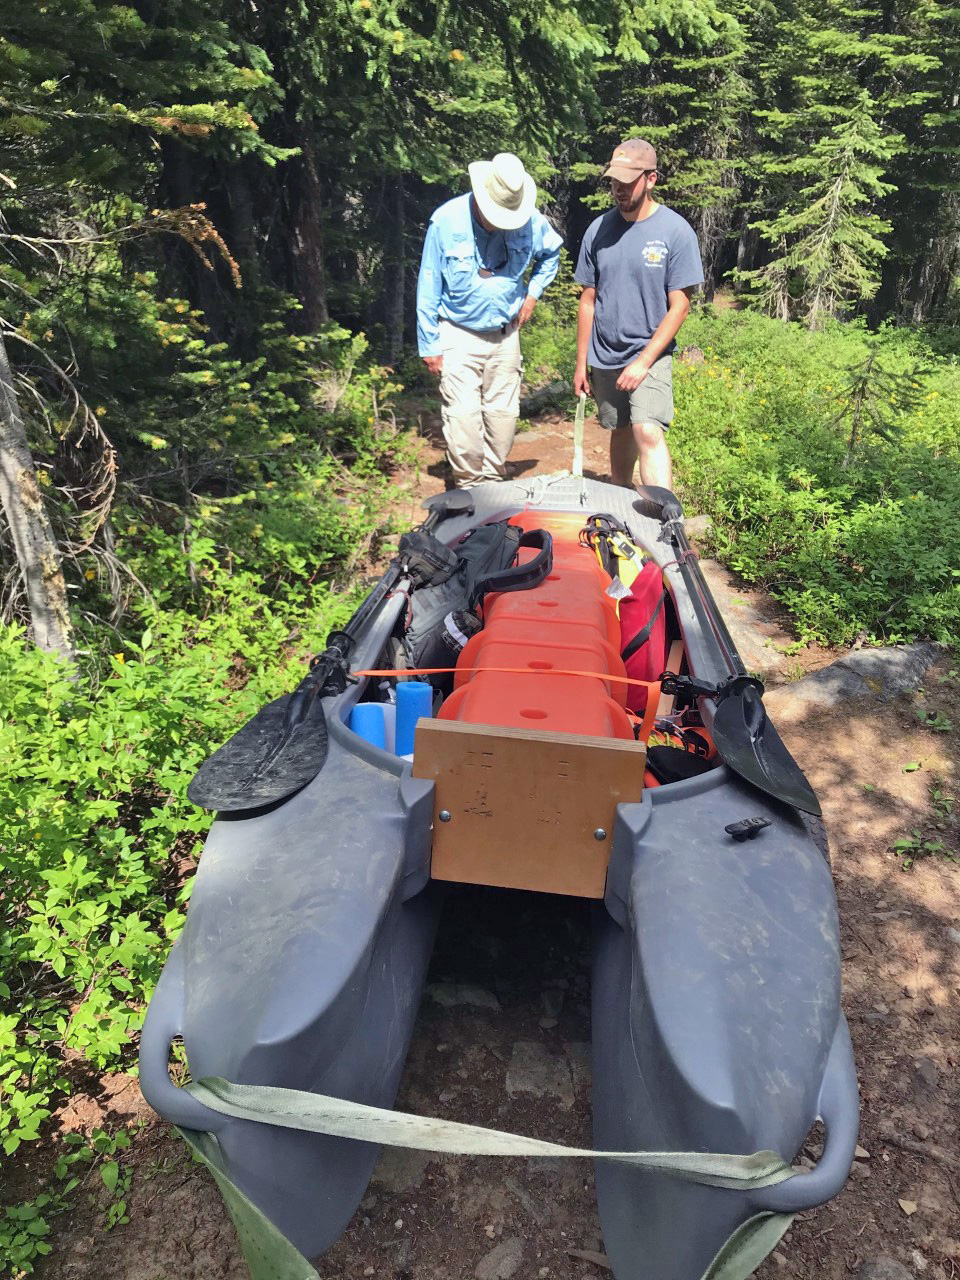 Carrying (portaging) the S4 tandem fishing kayak through rugged terrain